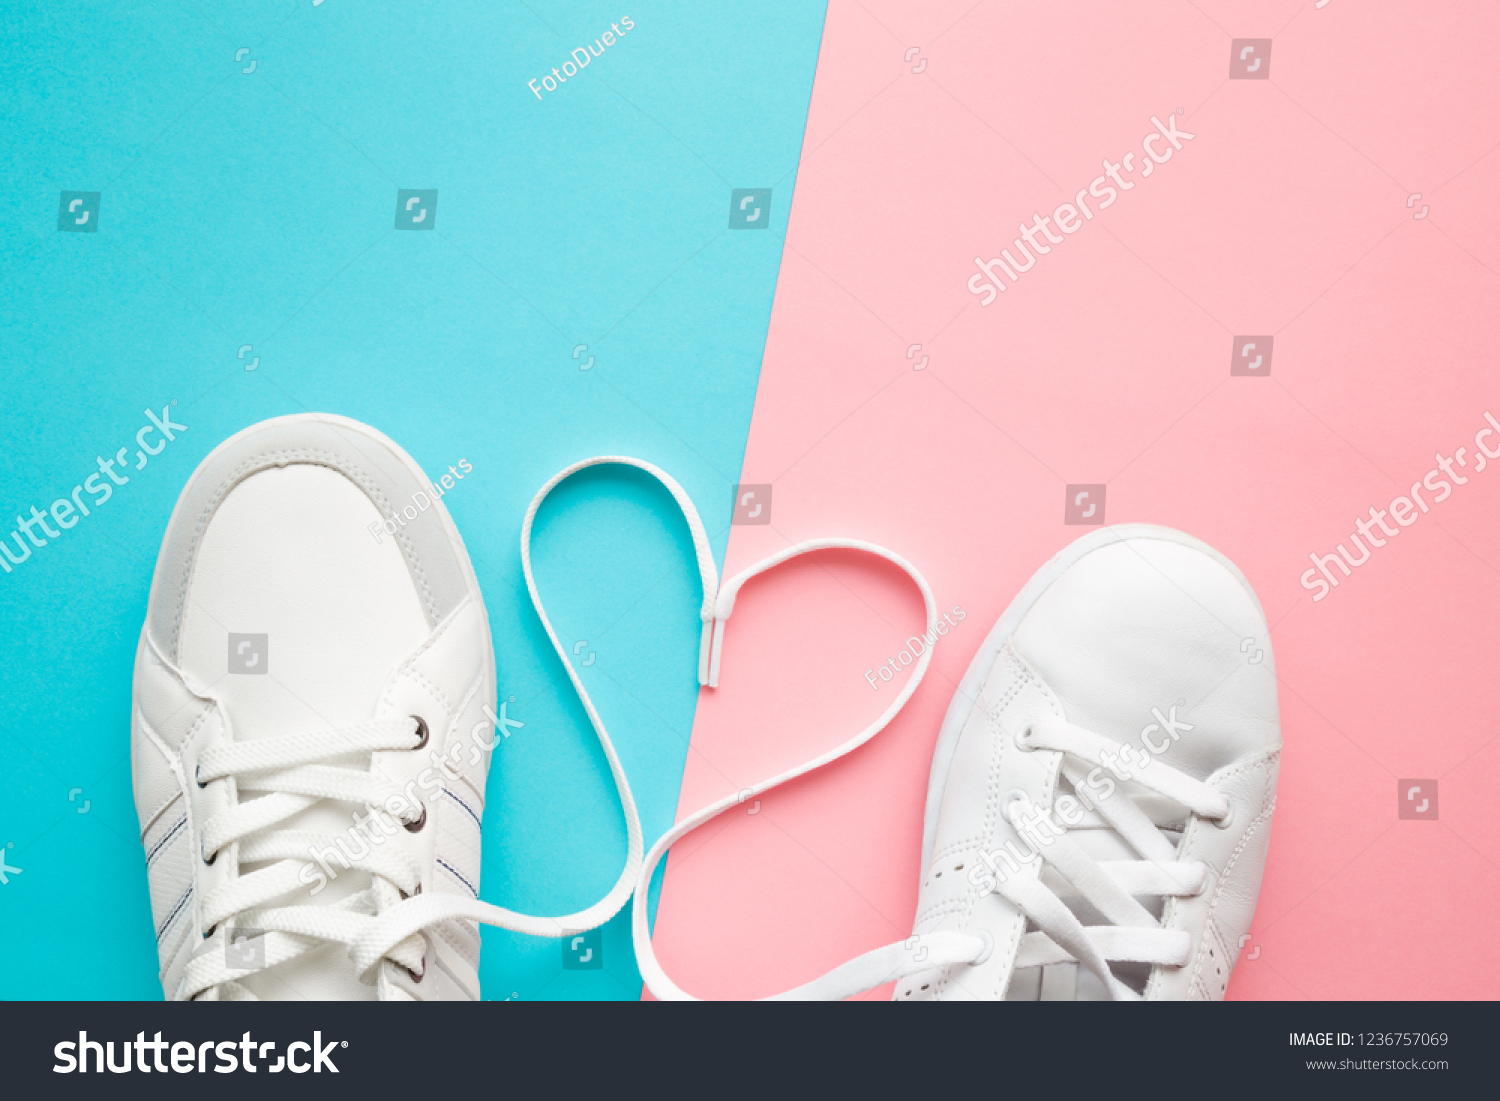 Heart created from white shoelaces between male and female sport shoes. Love concept. Top view. Empty place for lovely, cute text, quote or sayings on pastel blue and pink paper background. Closeup. #1236757069